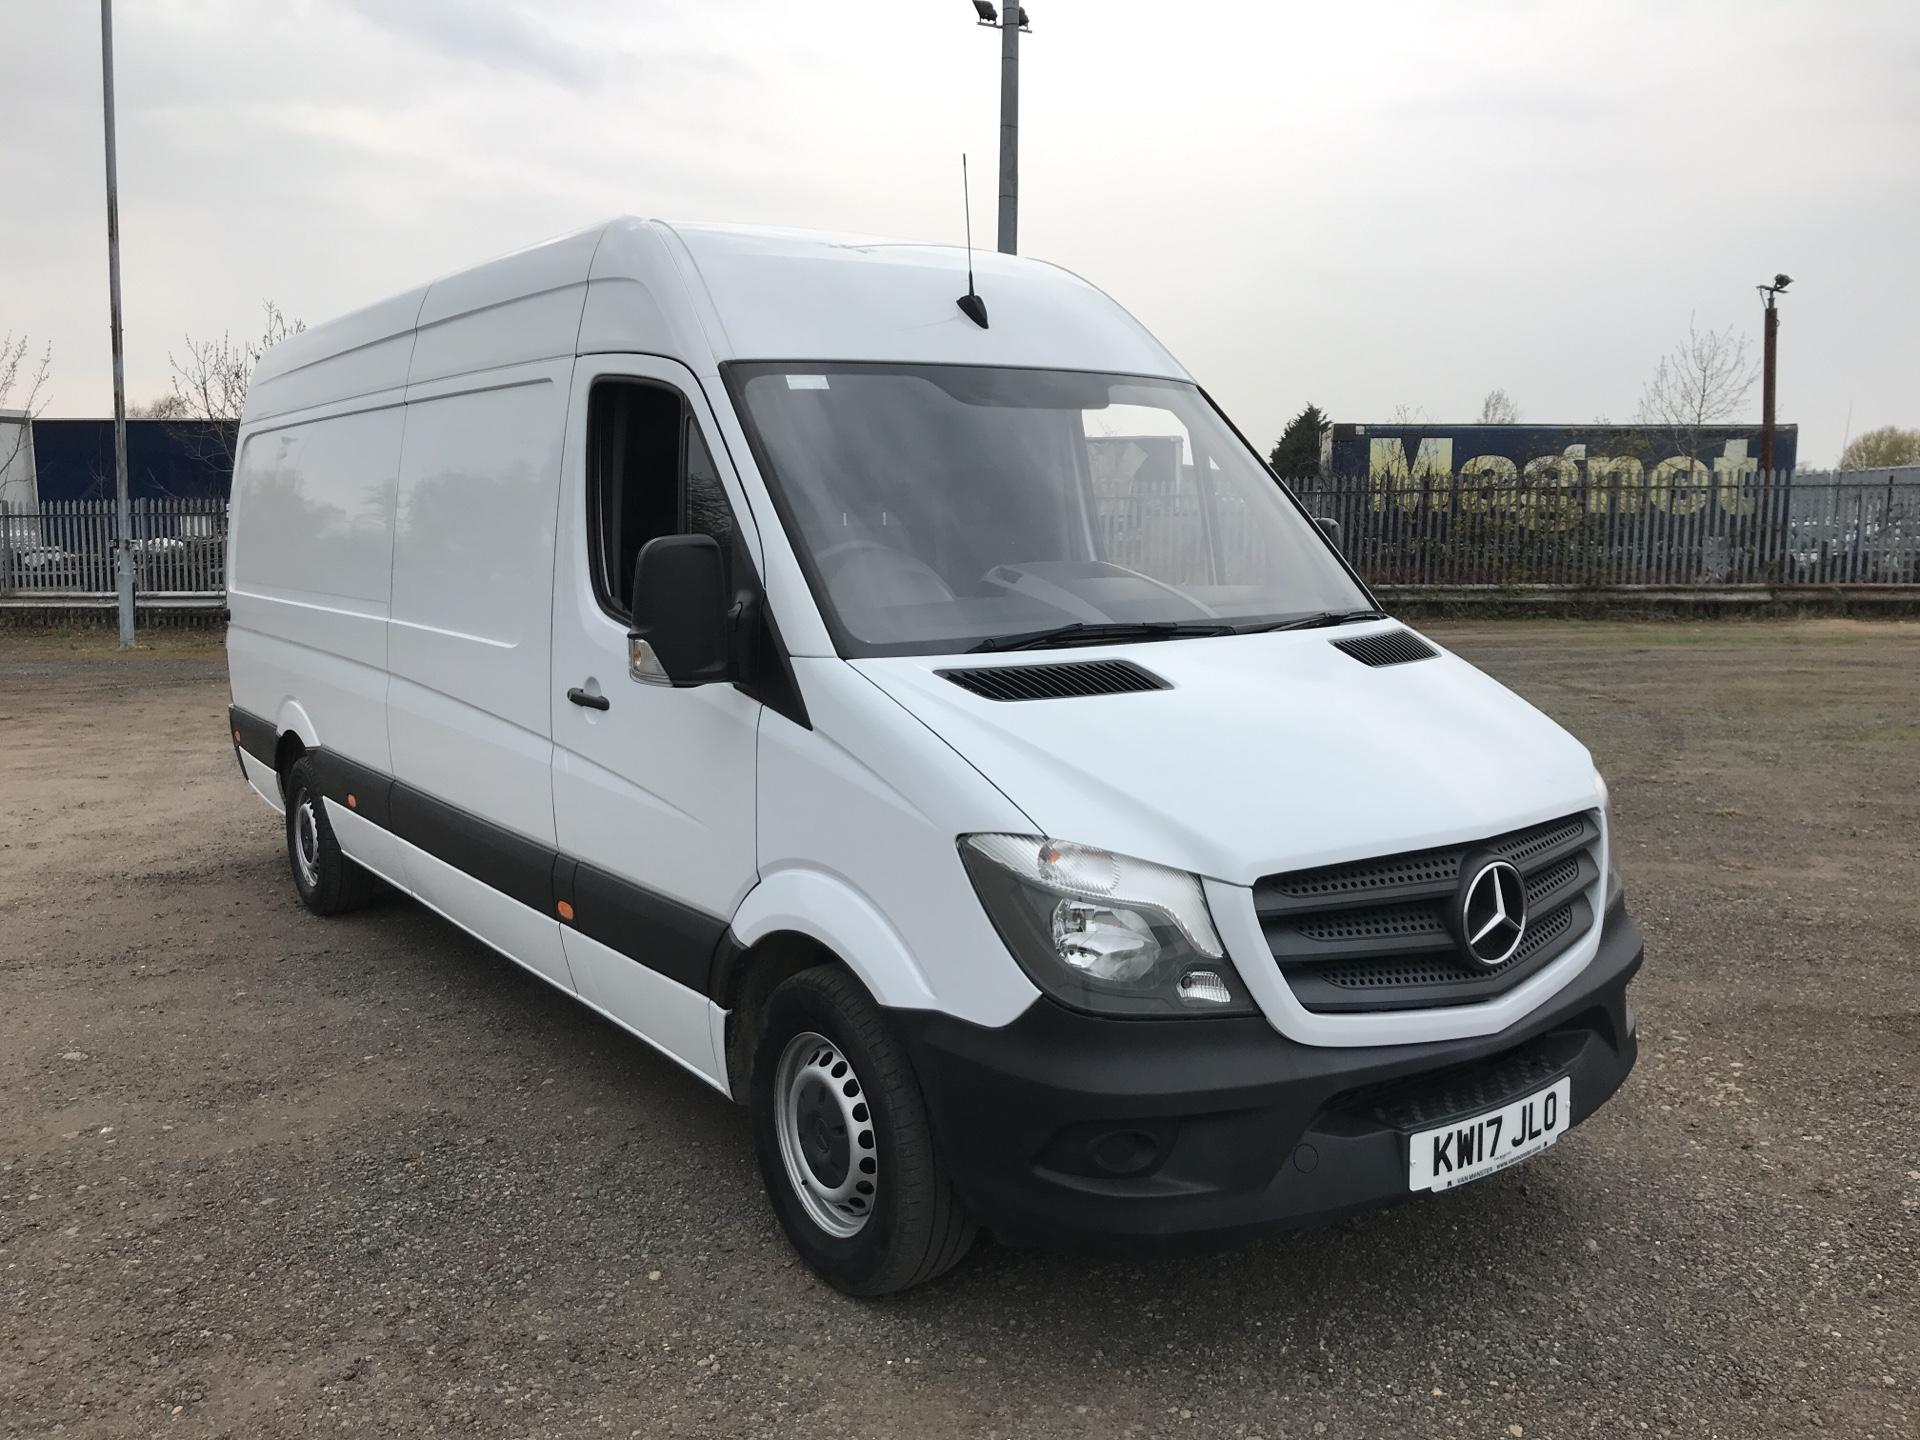 2017 Mercedes-Benz Sprinter 3.5T High Roof Van (KW17JLO)